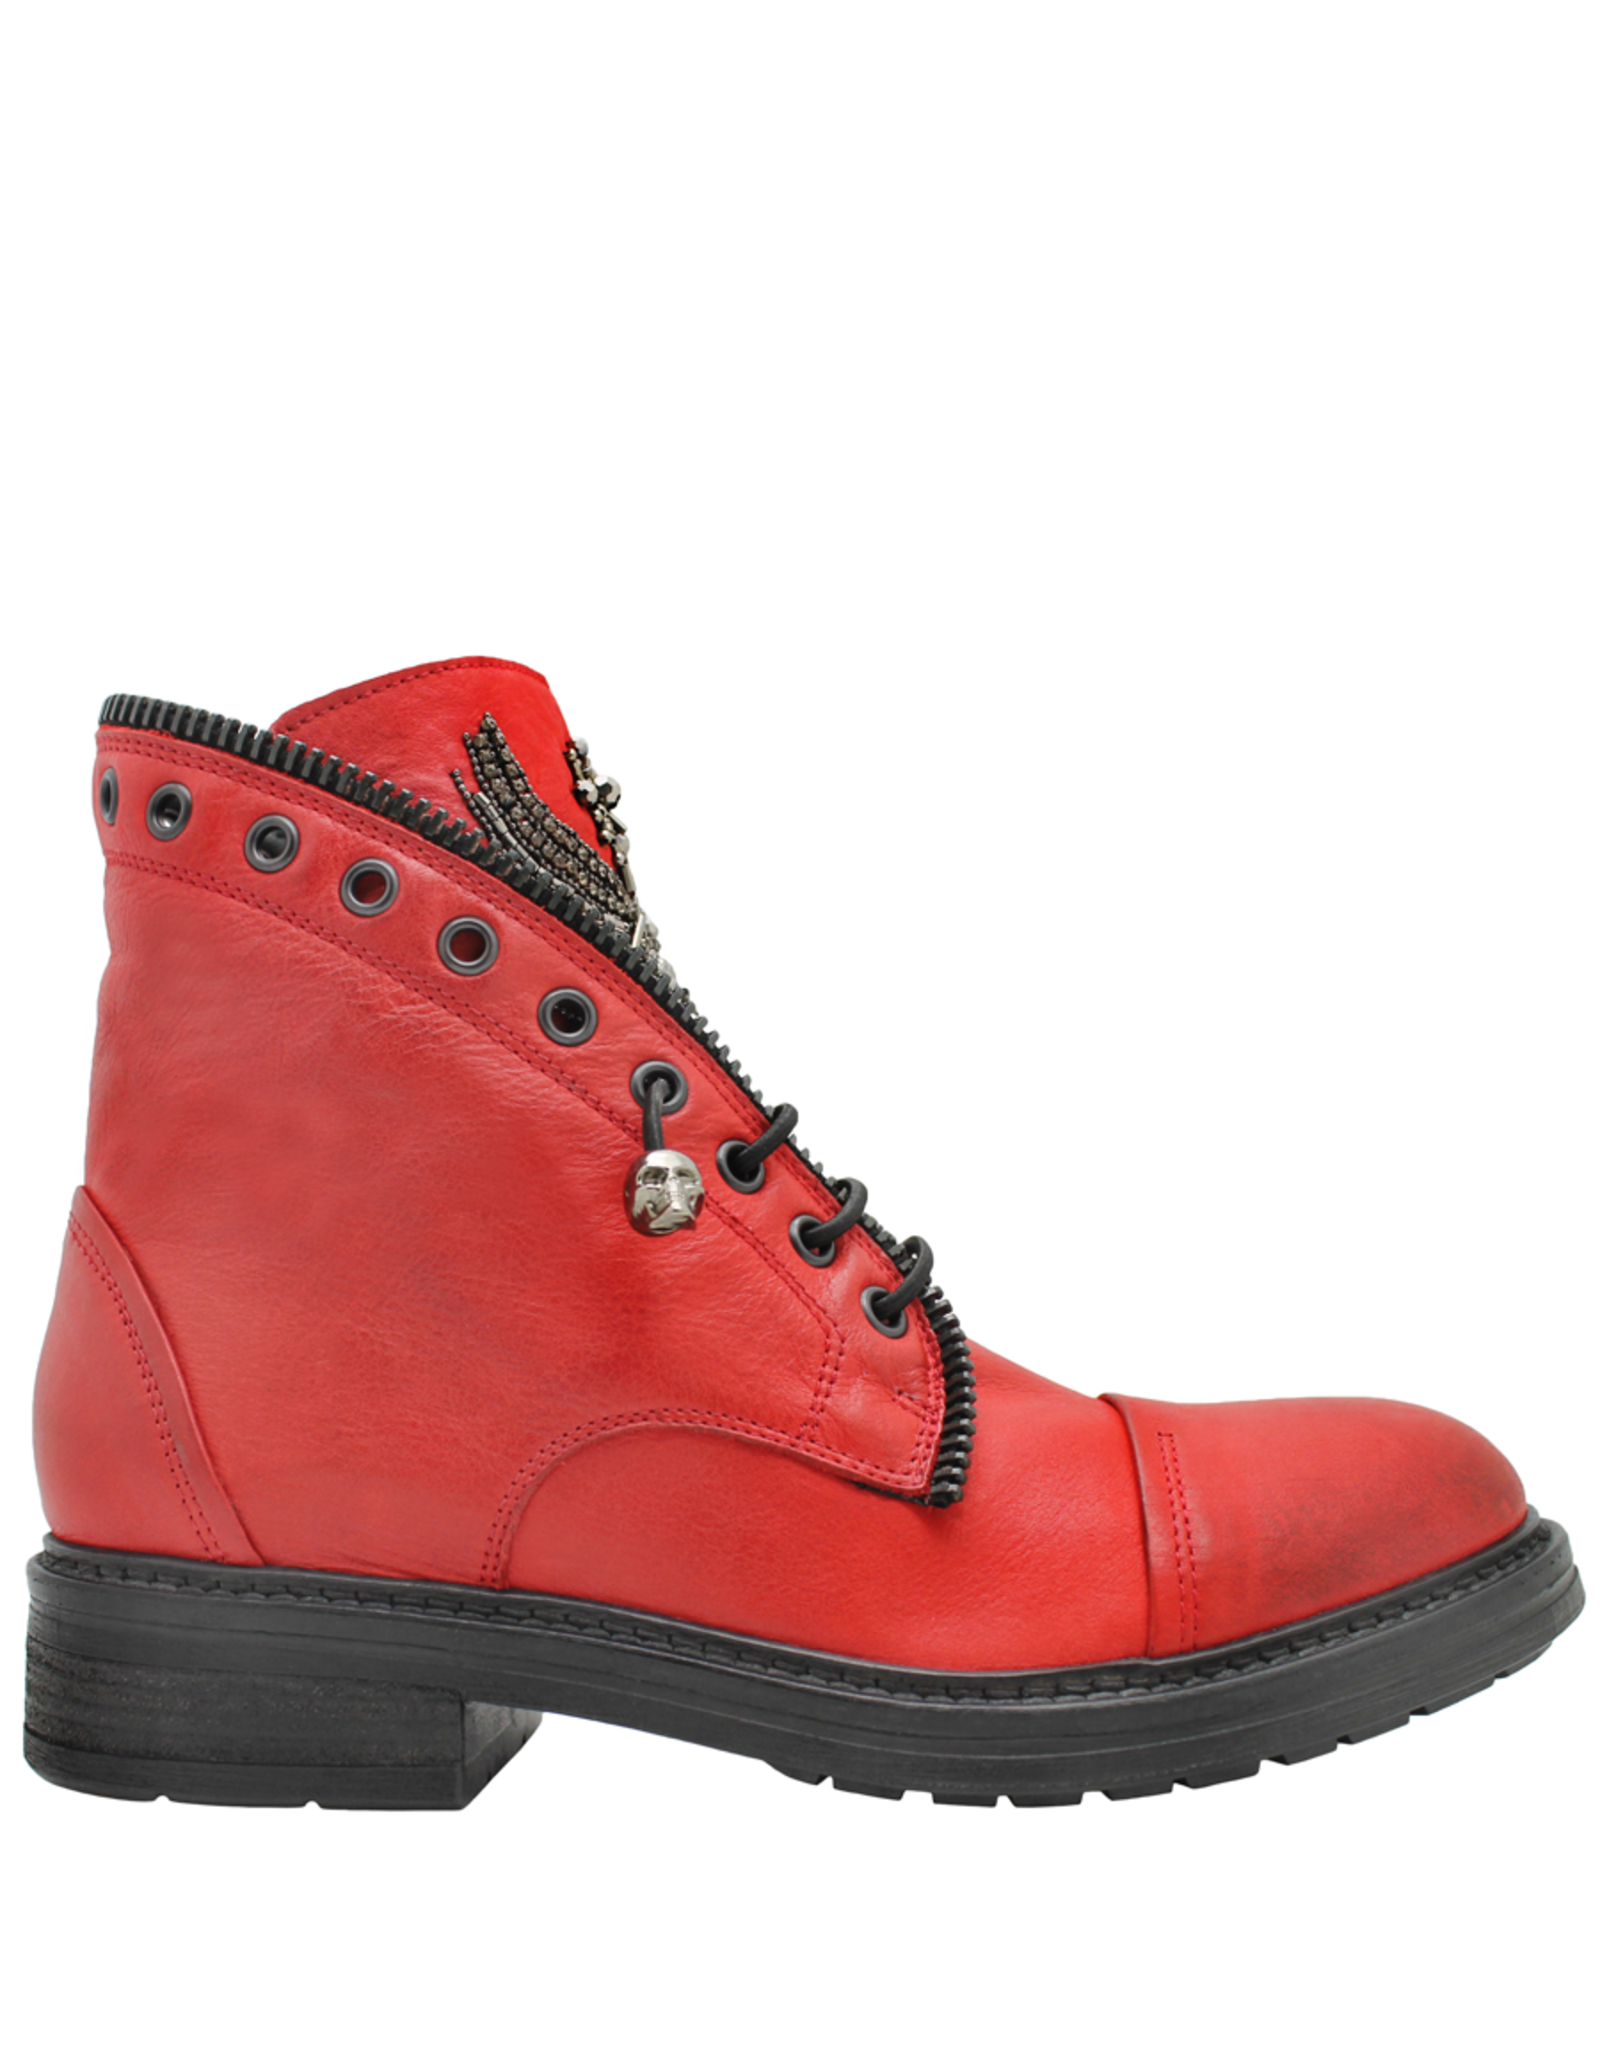 Now Now Red Jewel Pull On Boot 7018